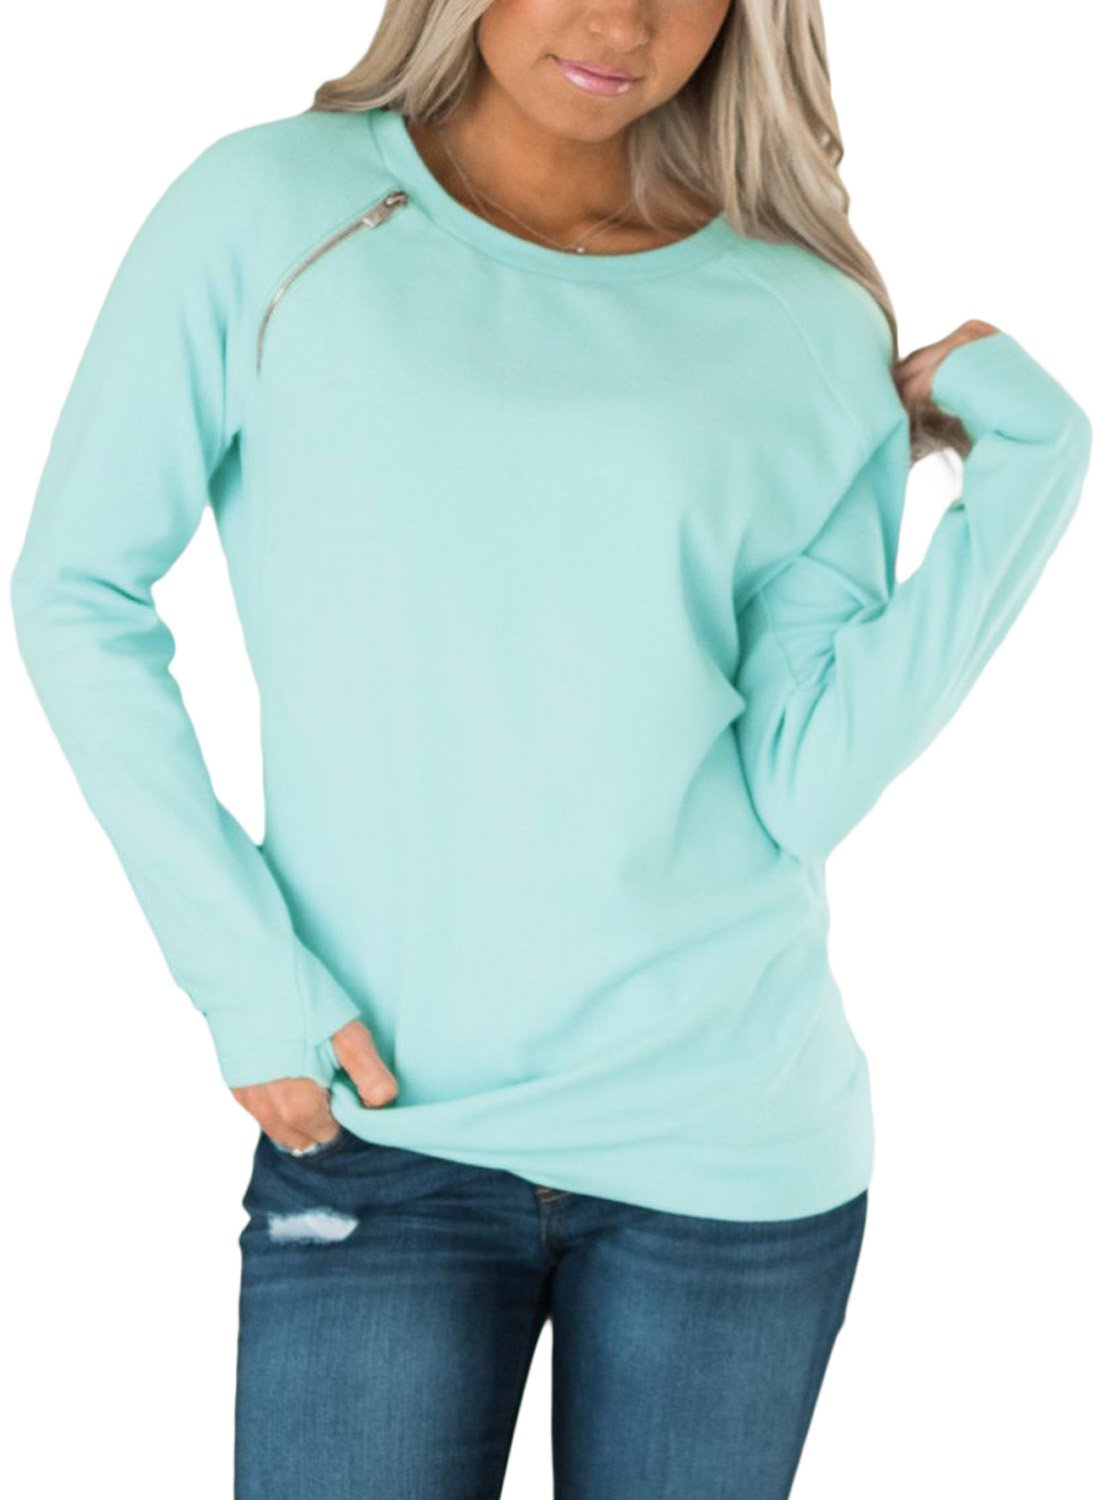 FIYOTE Womens Long Sleeve Round Neck Side Zip Pullover Sweatshirt Casual Tunic Tops